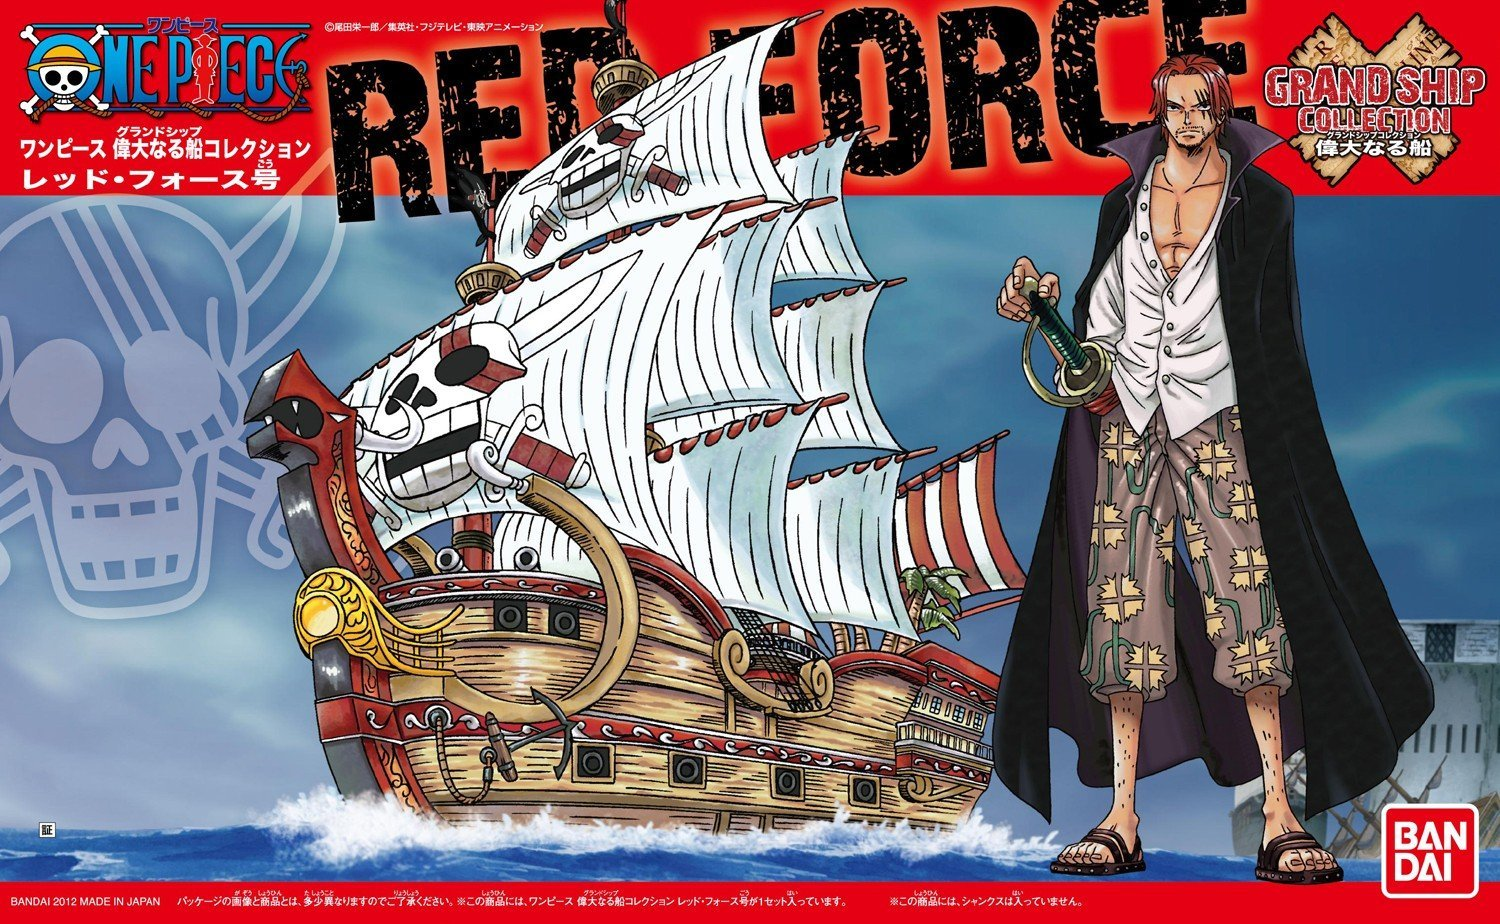 Red Force: Grand Ship Collection